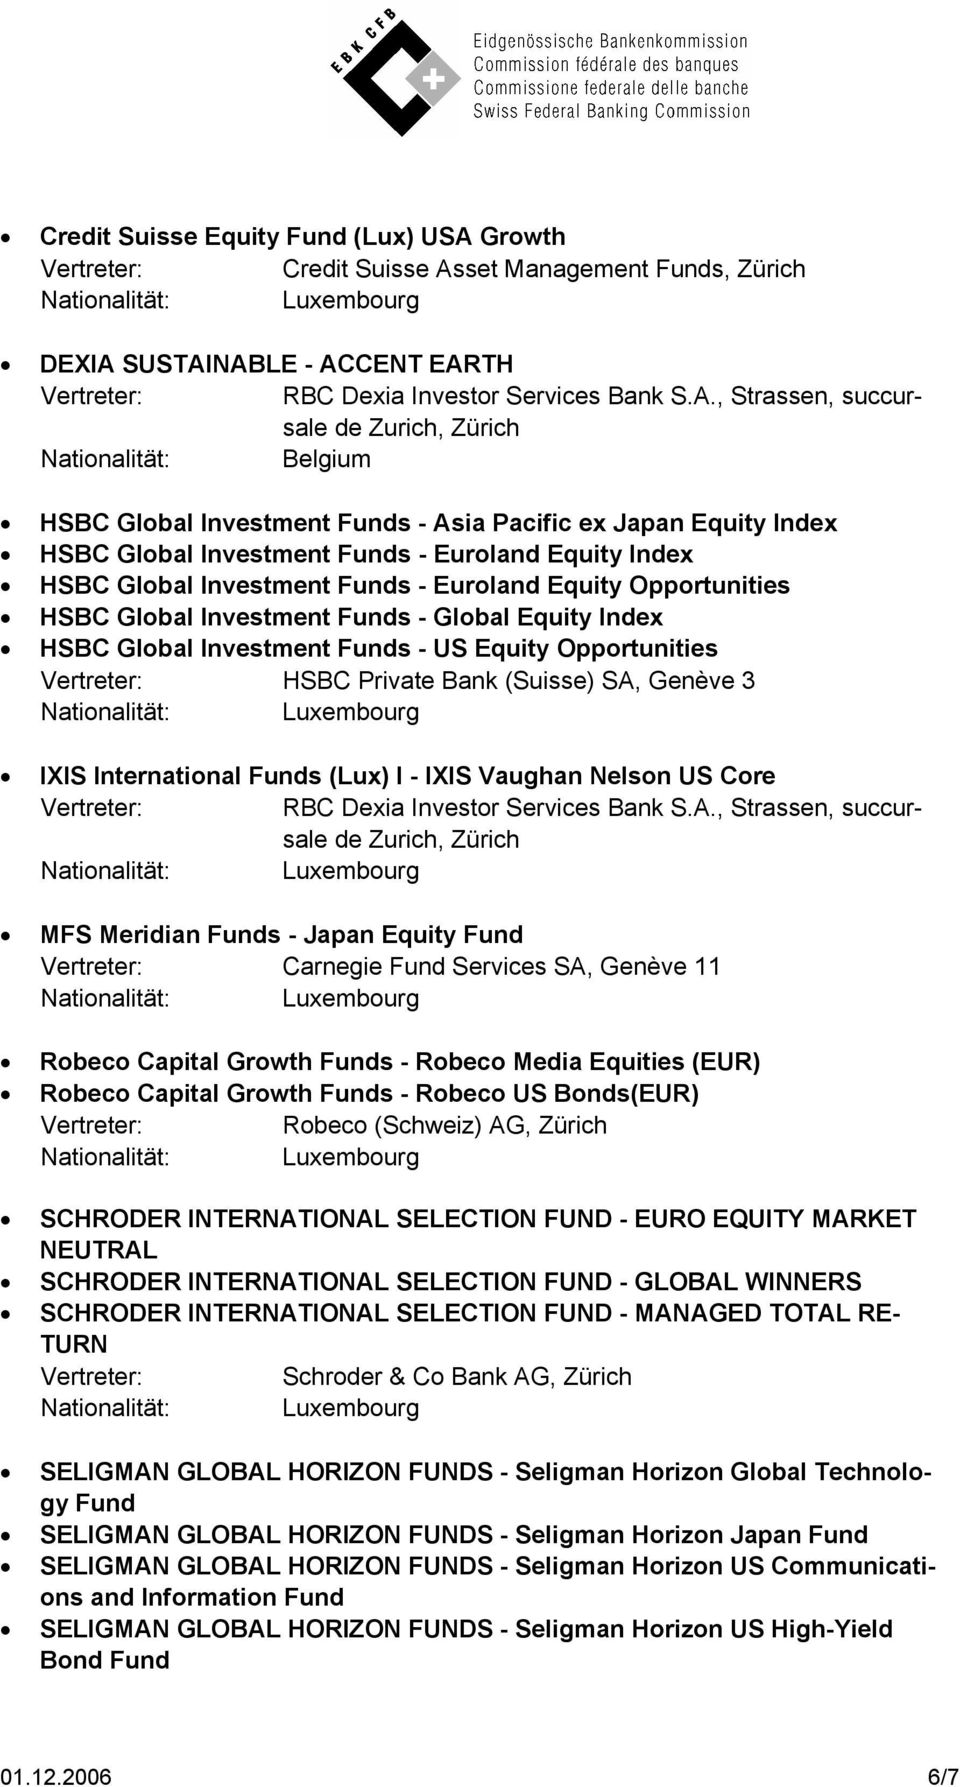 Private Bank (Suisse) SA, Genève 3 IXIS International s (Lux) I - IXIS Vaughan Nelson US Core MFS Meridian s - Japan Equity Carnegie Services SA, Genève 11 Robeco Capital Growth s - Robeco Media